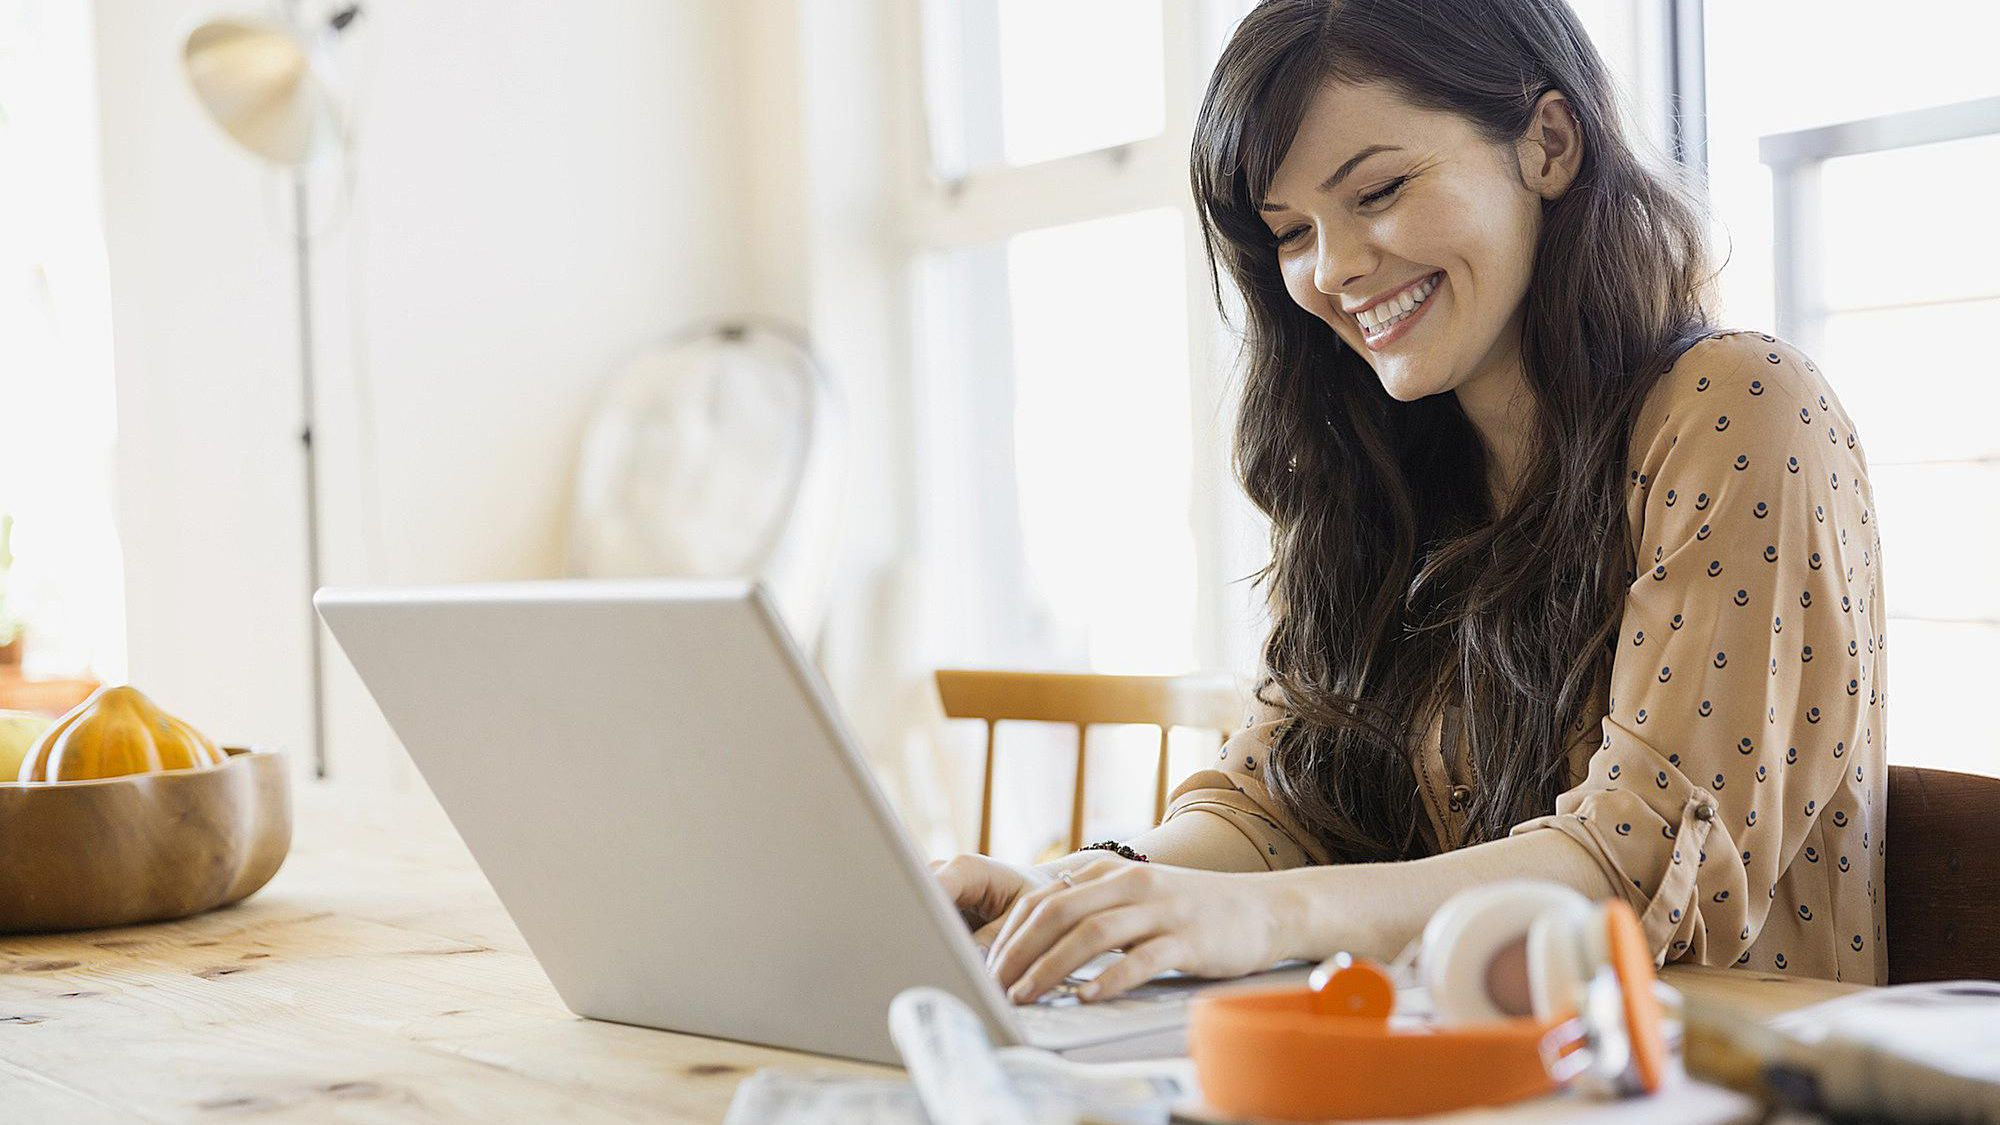 Best Job Search Sites for Entry-Level Positions